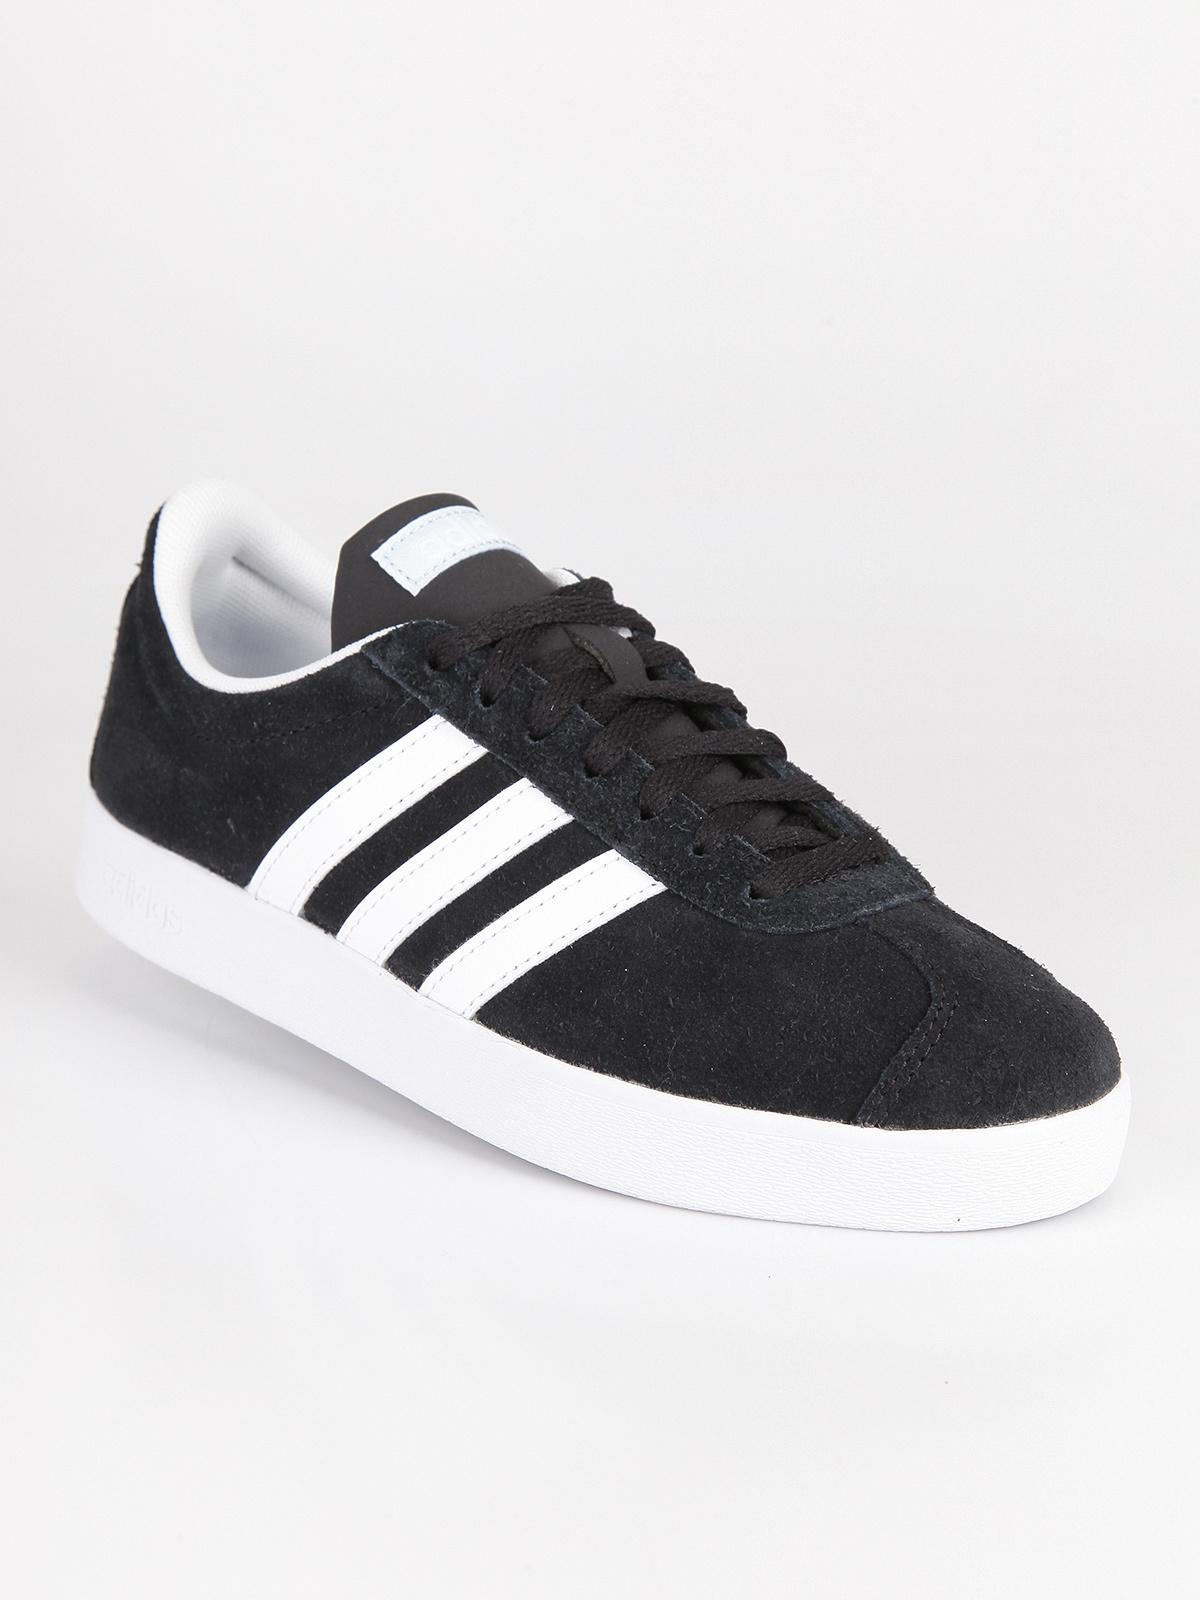 adidas vl court donna lace up sneakers